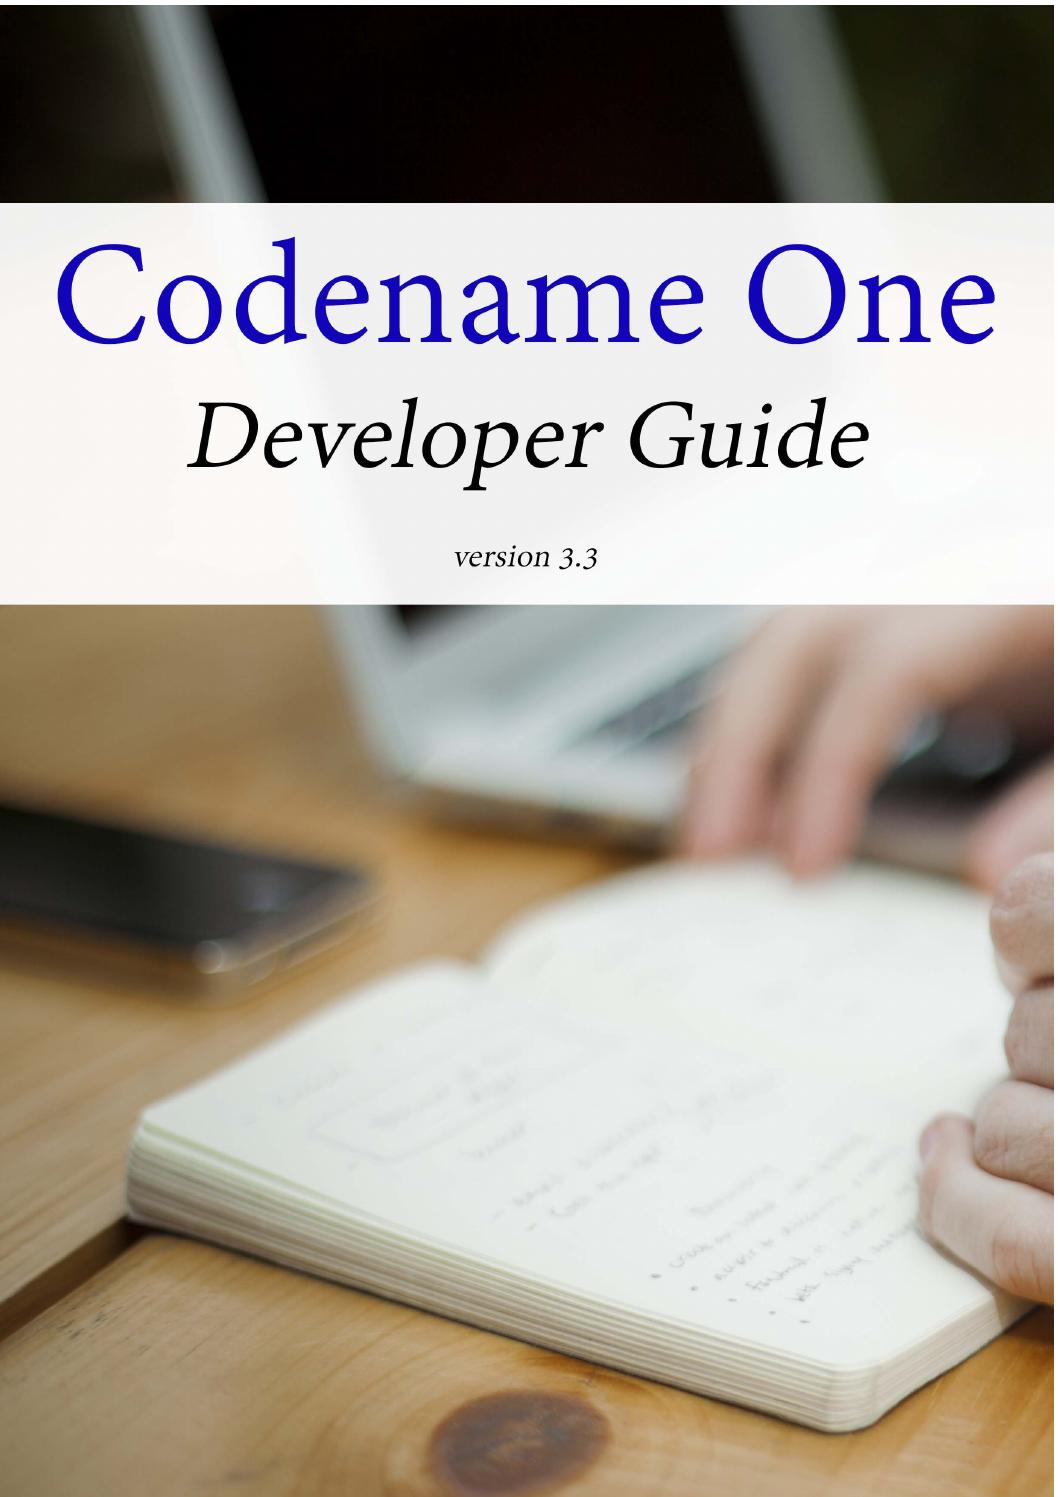 Codename One Developer Guide Part 1 By Shai Almog Issuu 493 118 Kb Jpeg Odyssey Remote Start Wiring Diagram Flickr Photo